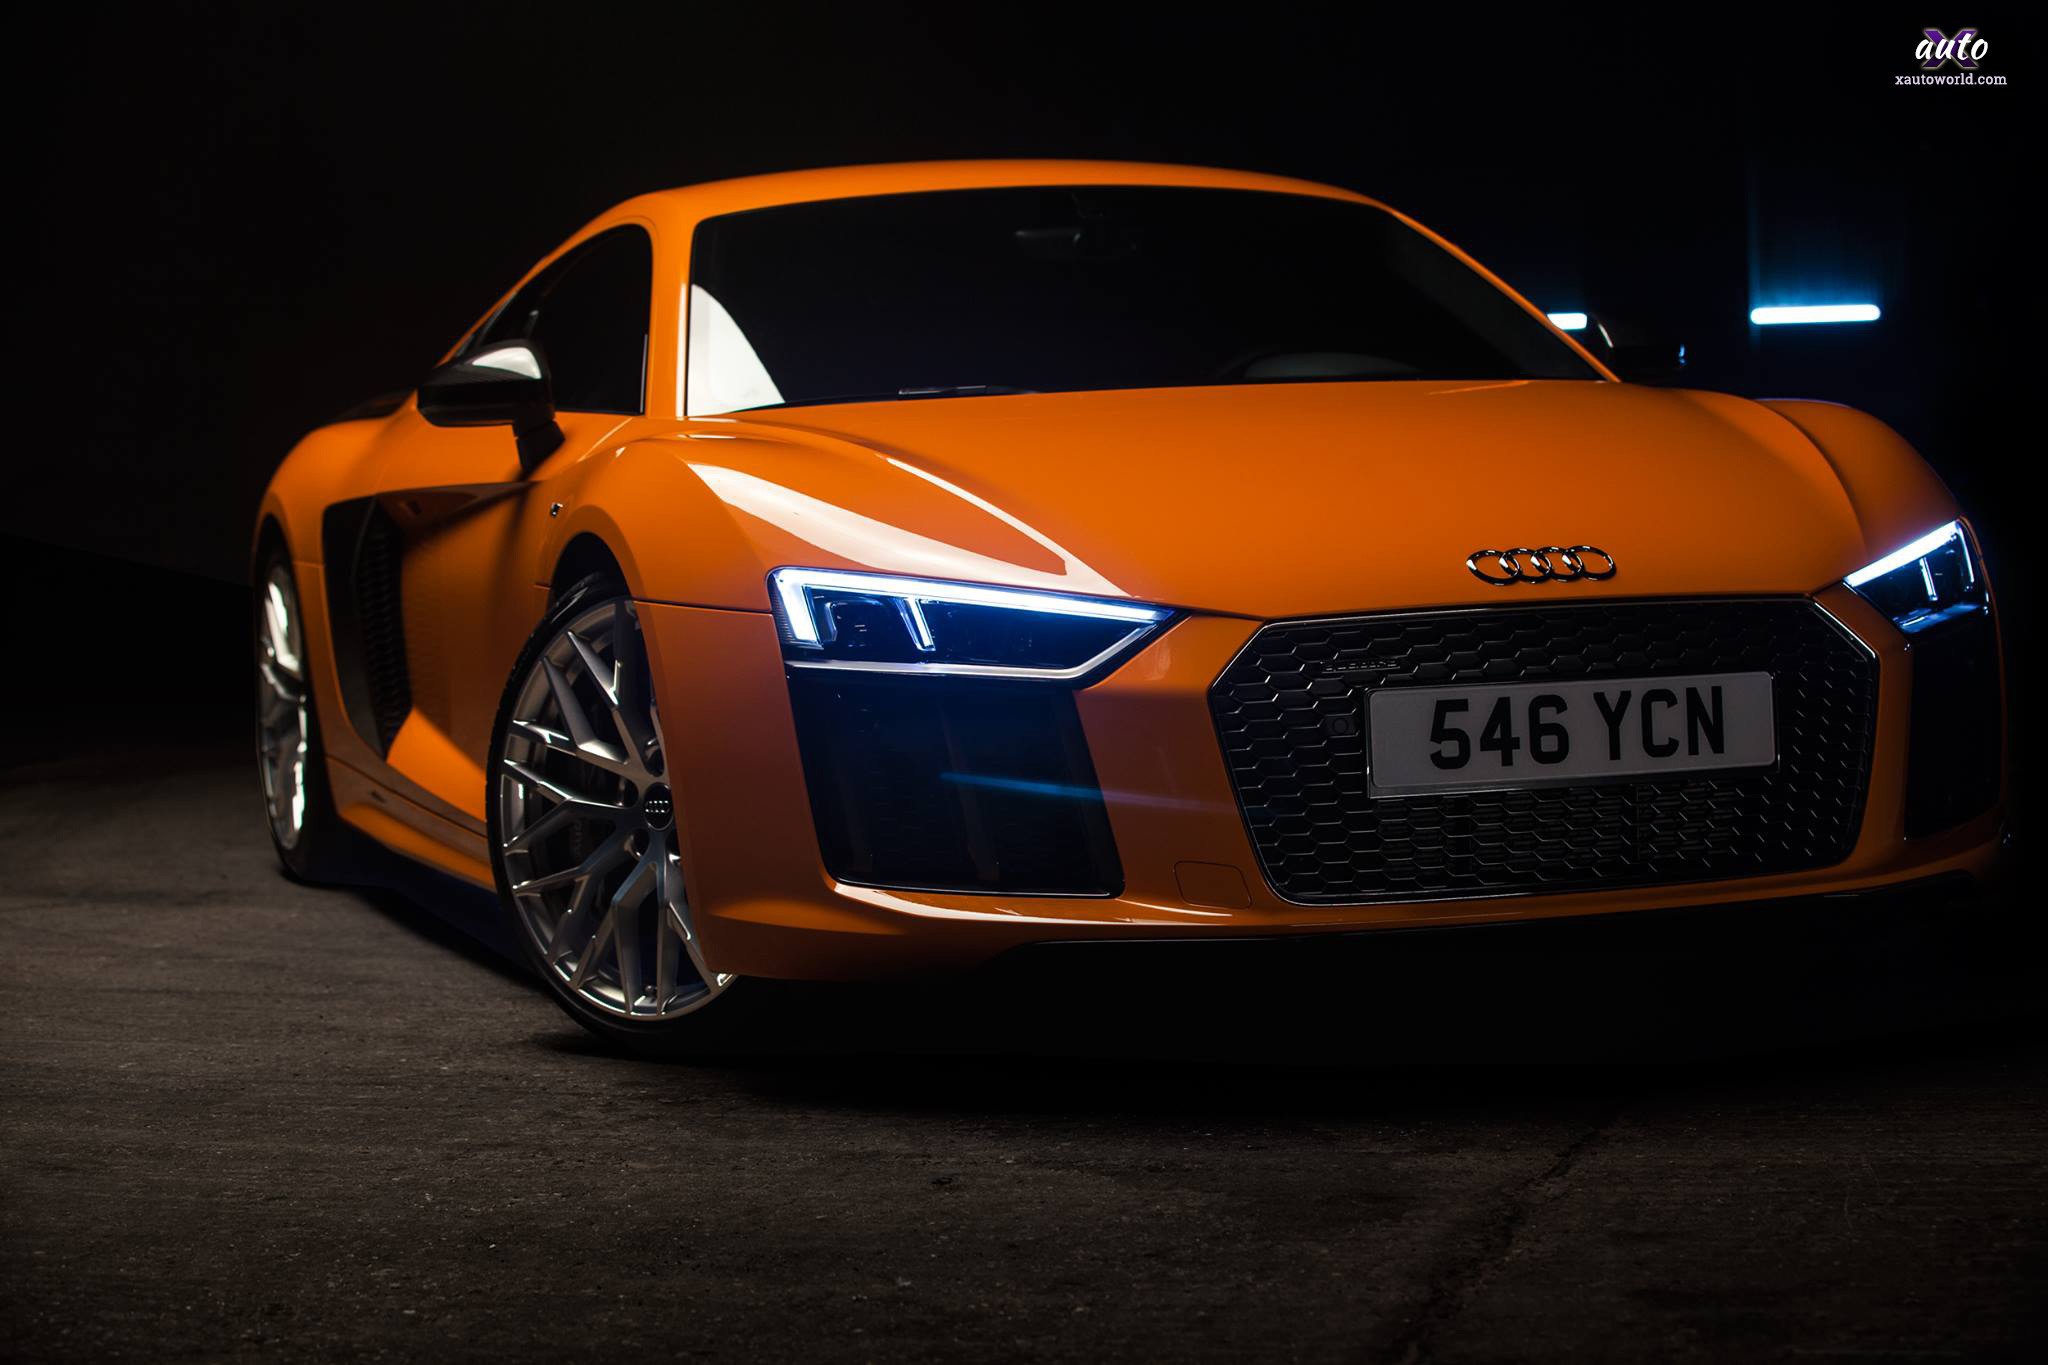 2048x1365 25 Jan Audi R8 – Orange Colour HD Wallpapers